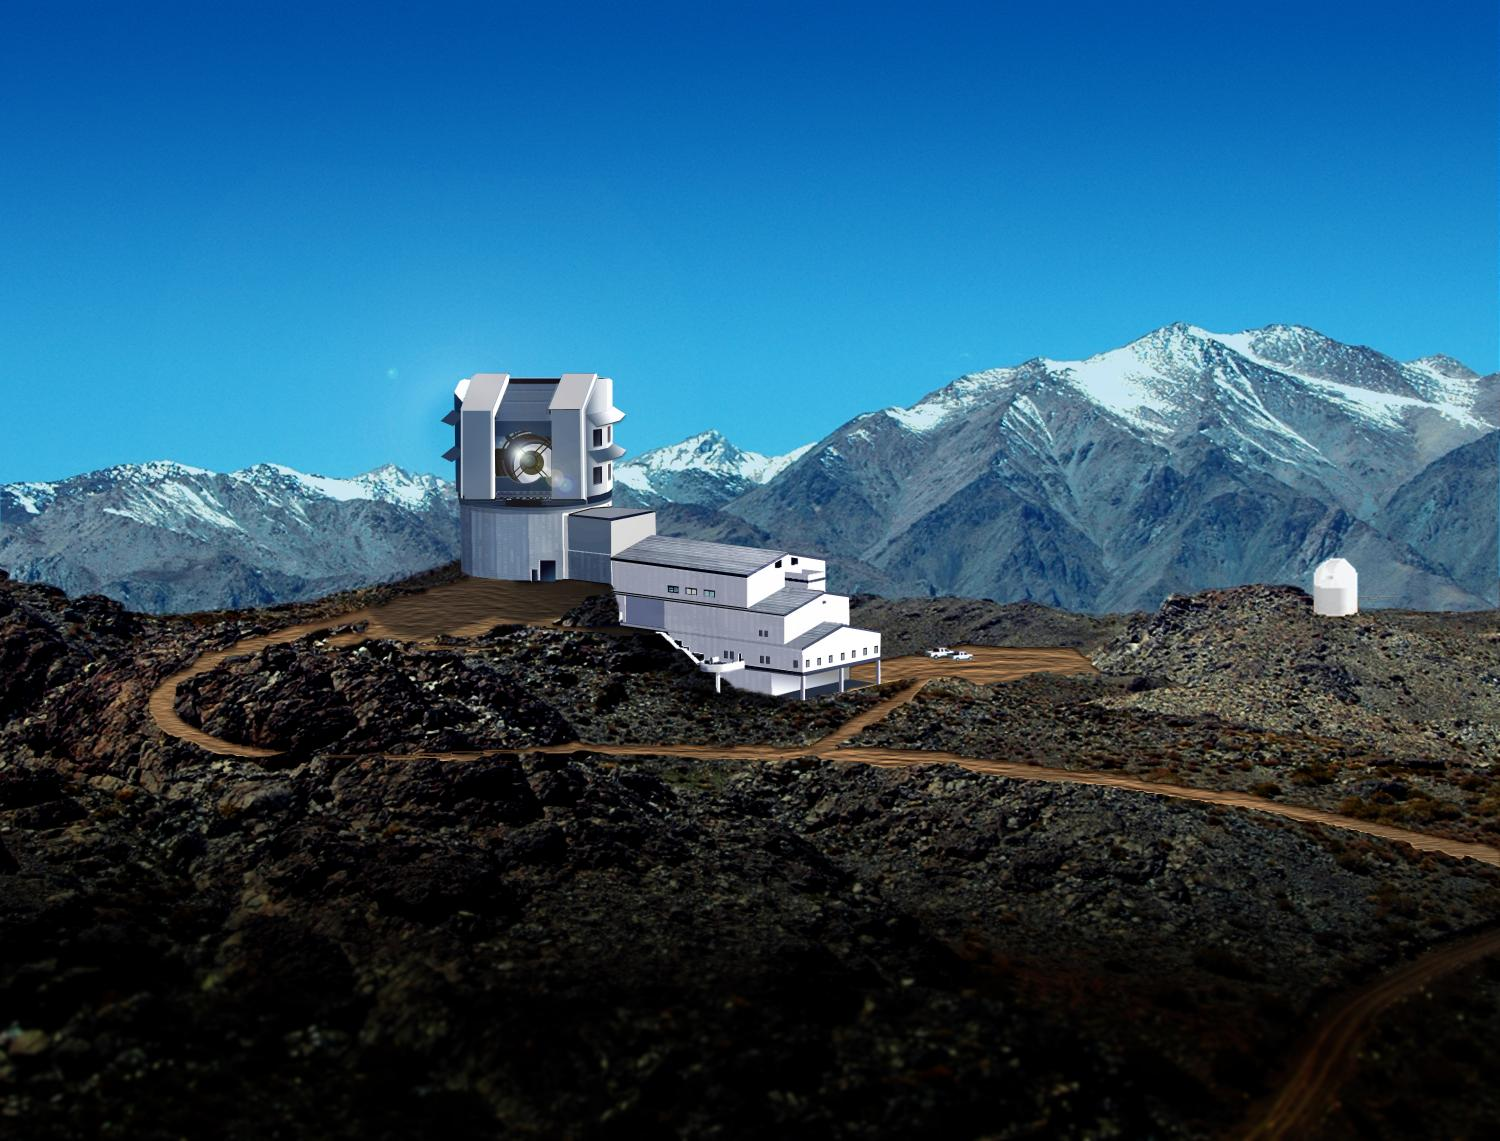 Astronomers seek widest view ever of the universe with new telescope